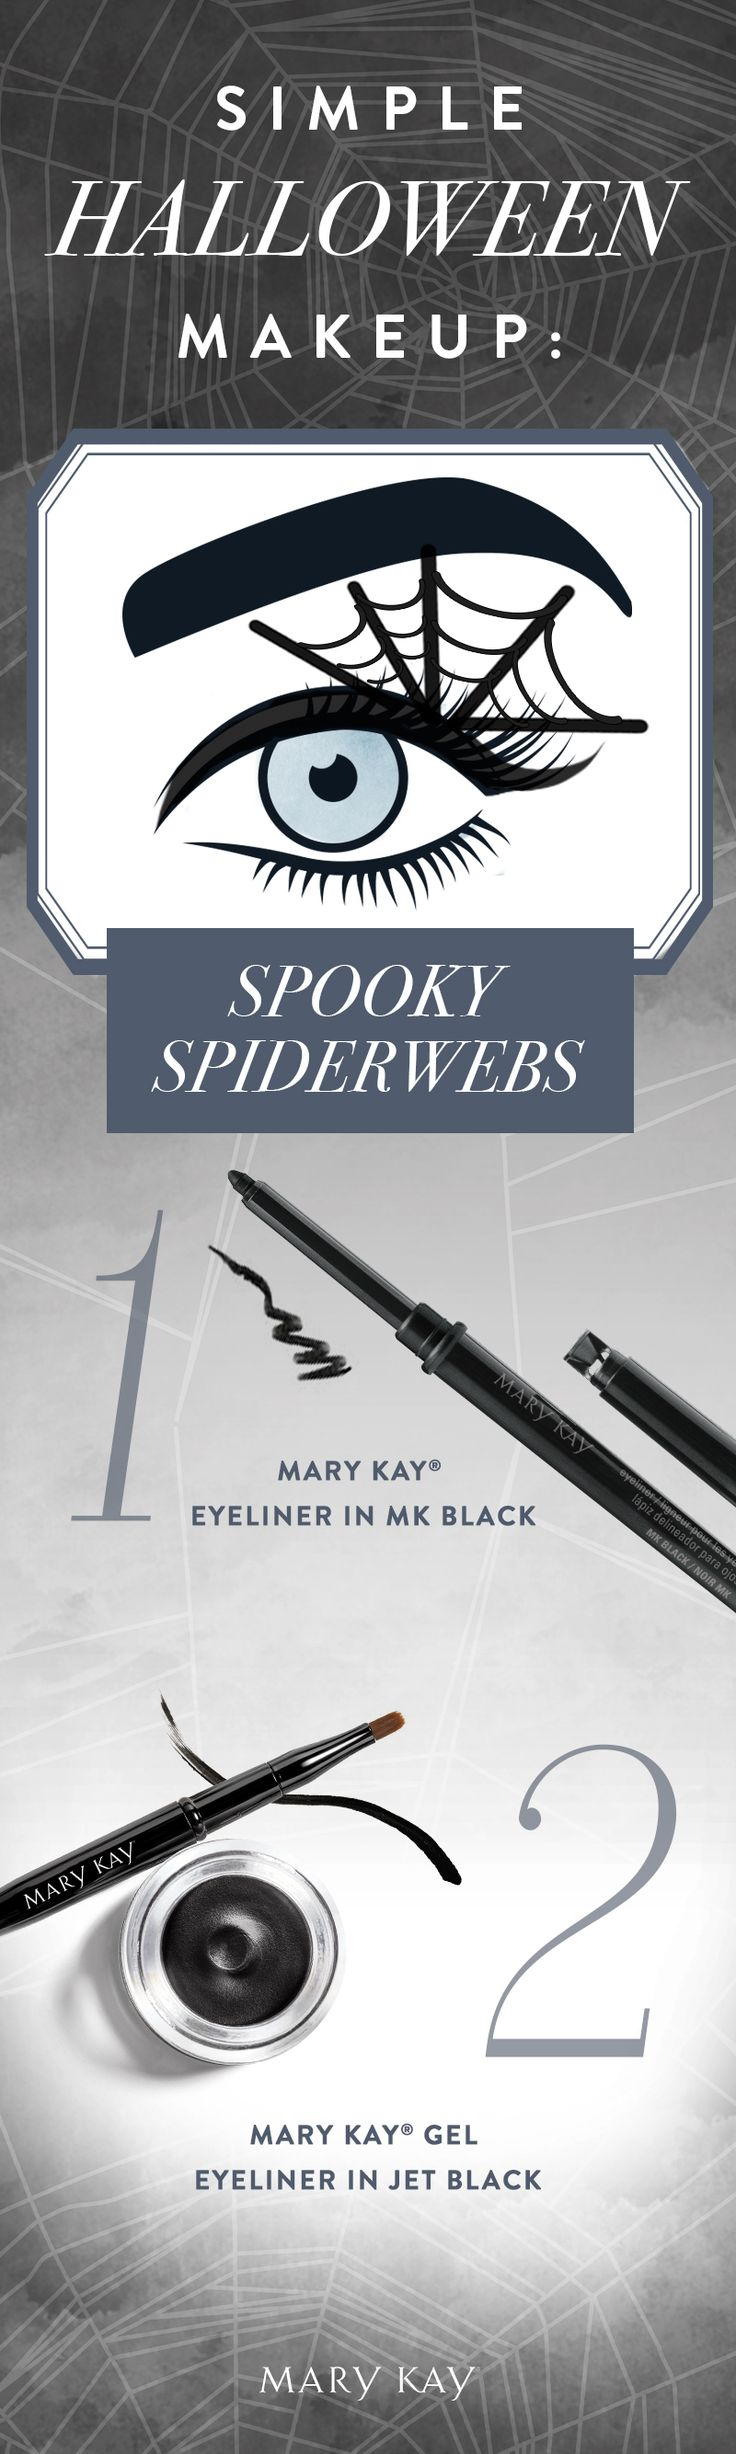 Don't have time for a full costume? A spooky eye makeup look will do the trick this Halloween! Use Mary Kay® Gel Eyeliner to line eyes, then draw 5 lines from top lashline toward brow line with Mary Kay® Eyeliner in MK Black. Connect the lines at the base, middle, and top to create a spiderweb!